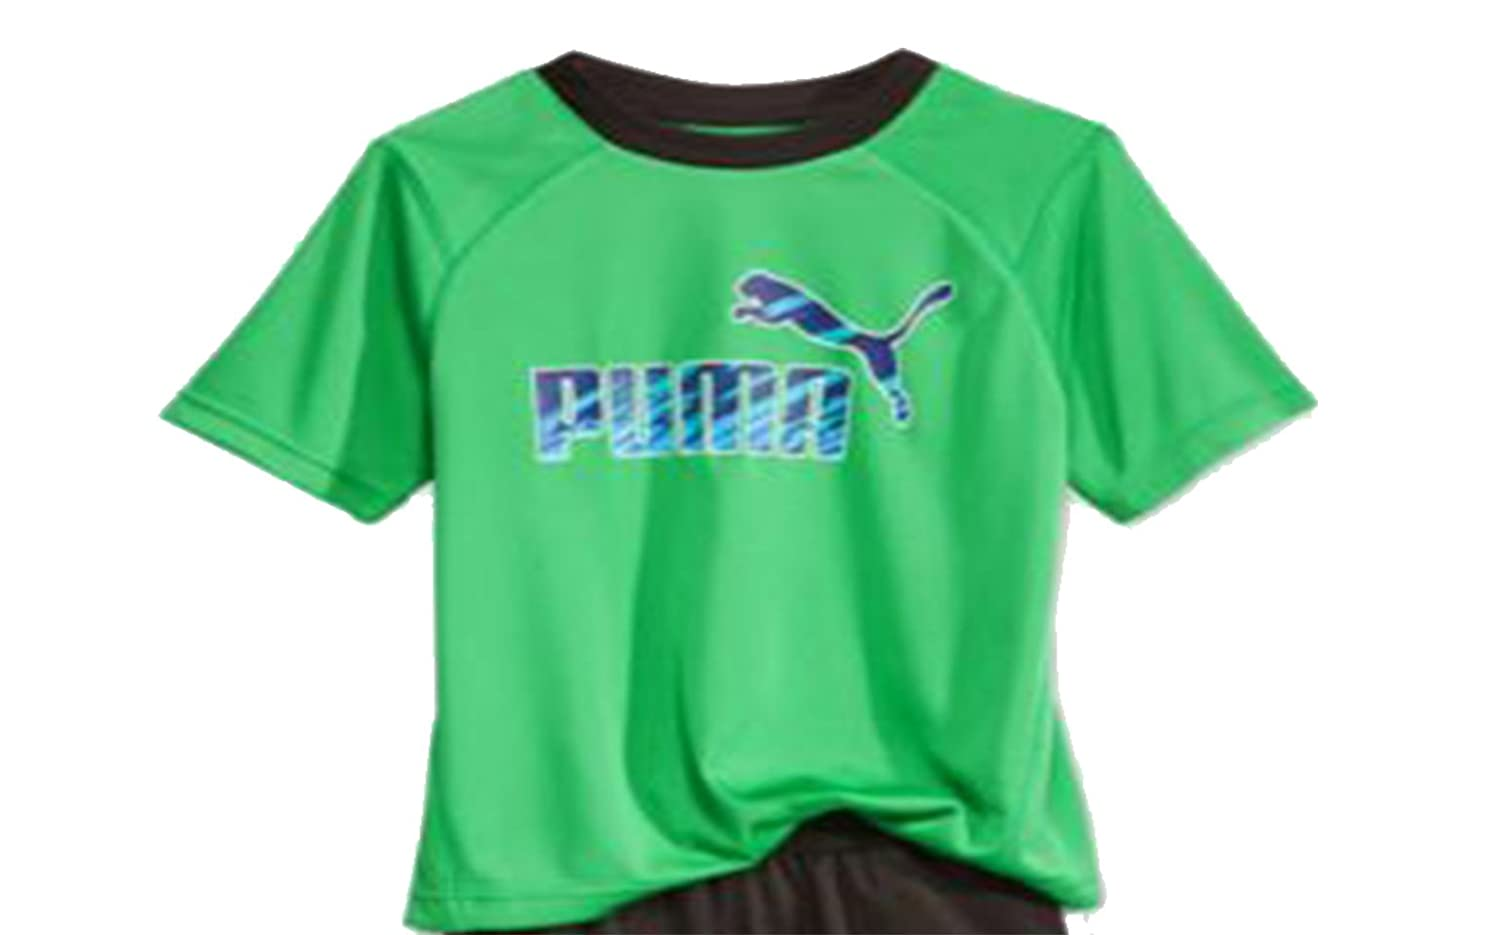 dbbff2553b09 Amazon.com  Puma Little Boys T-Shirt Short Sleeve Active Green Size 4   Clothing